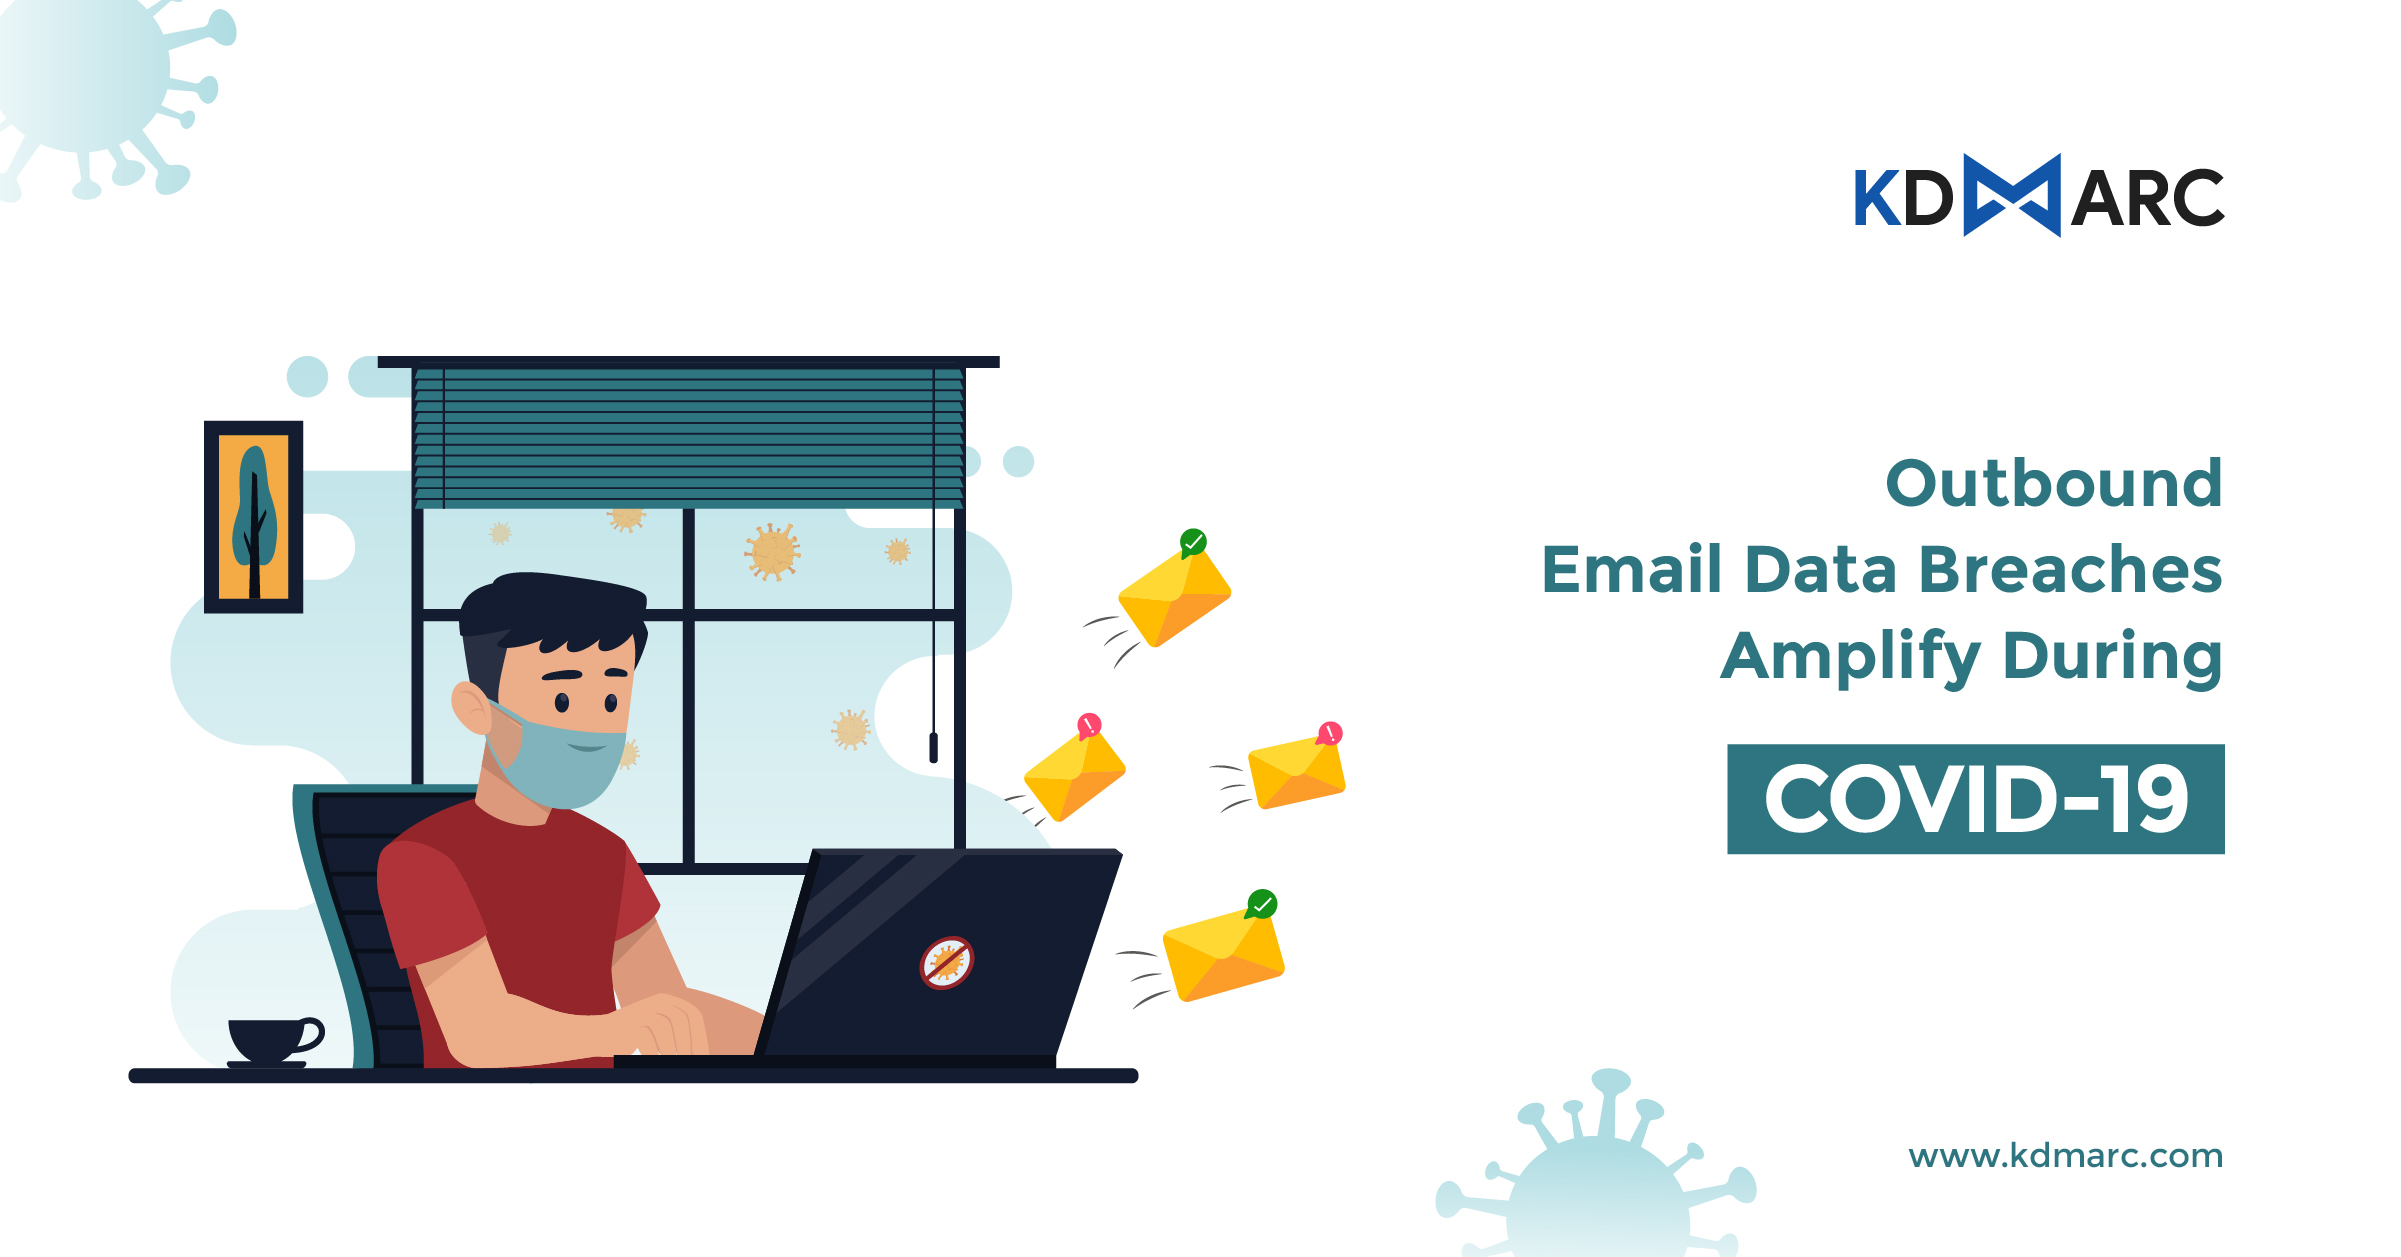 Outbound Email Errors Lead to 93% Increase in Data Breaches